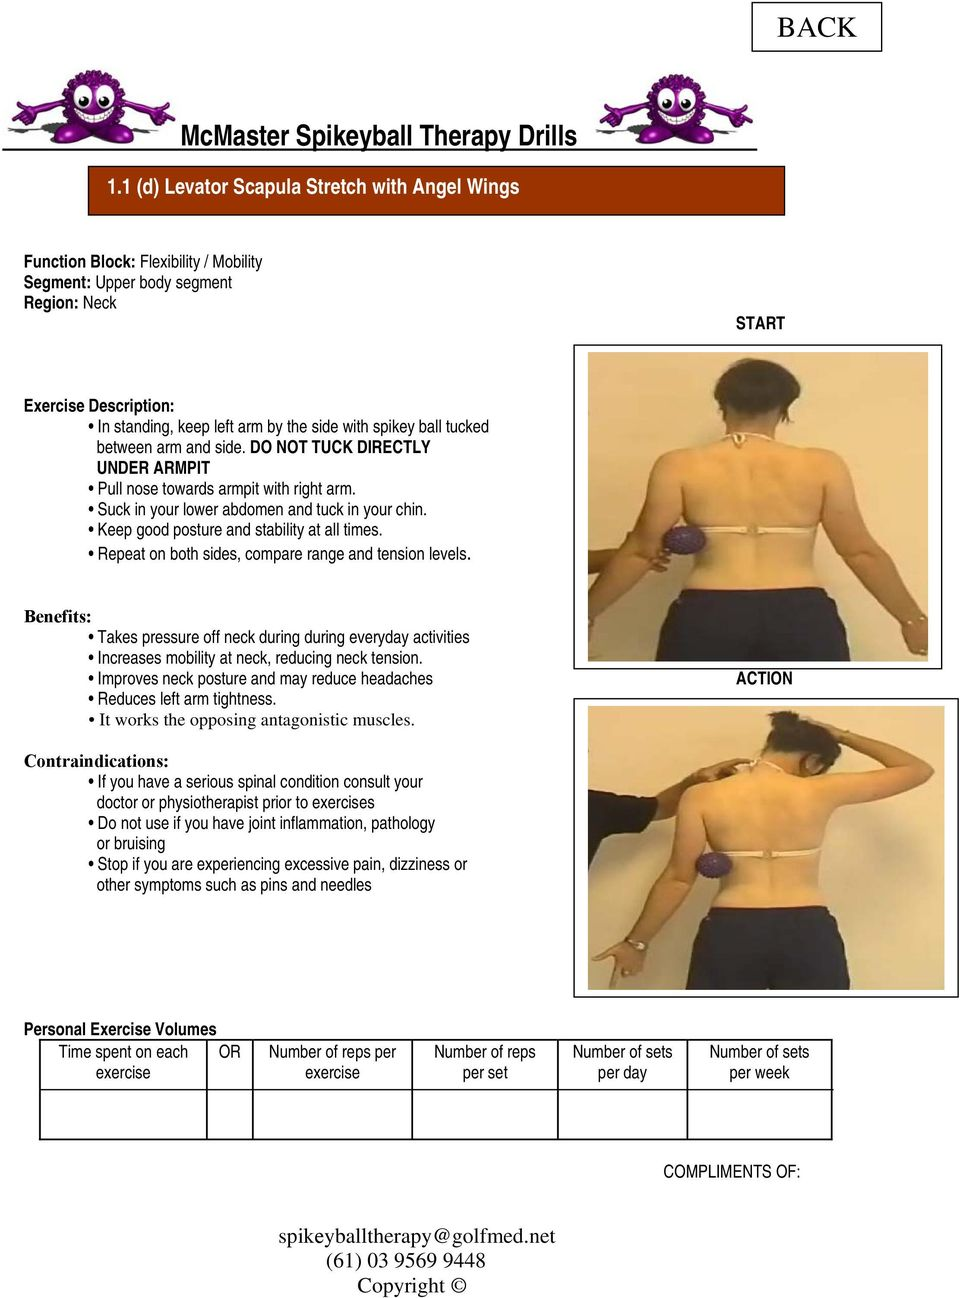 Keep good posture and stability at all times. Repeat on both sides, compare range and tension levels.